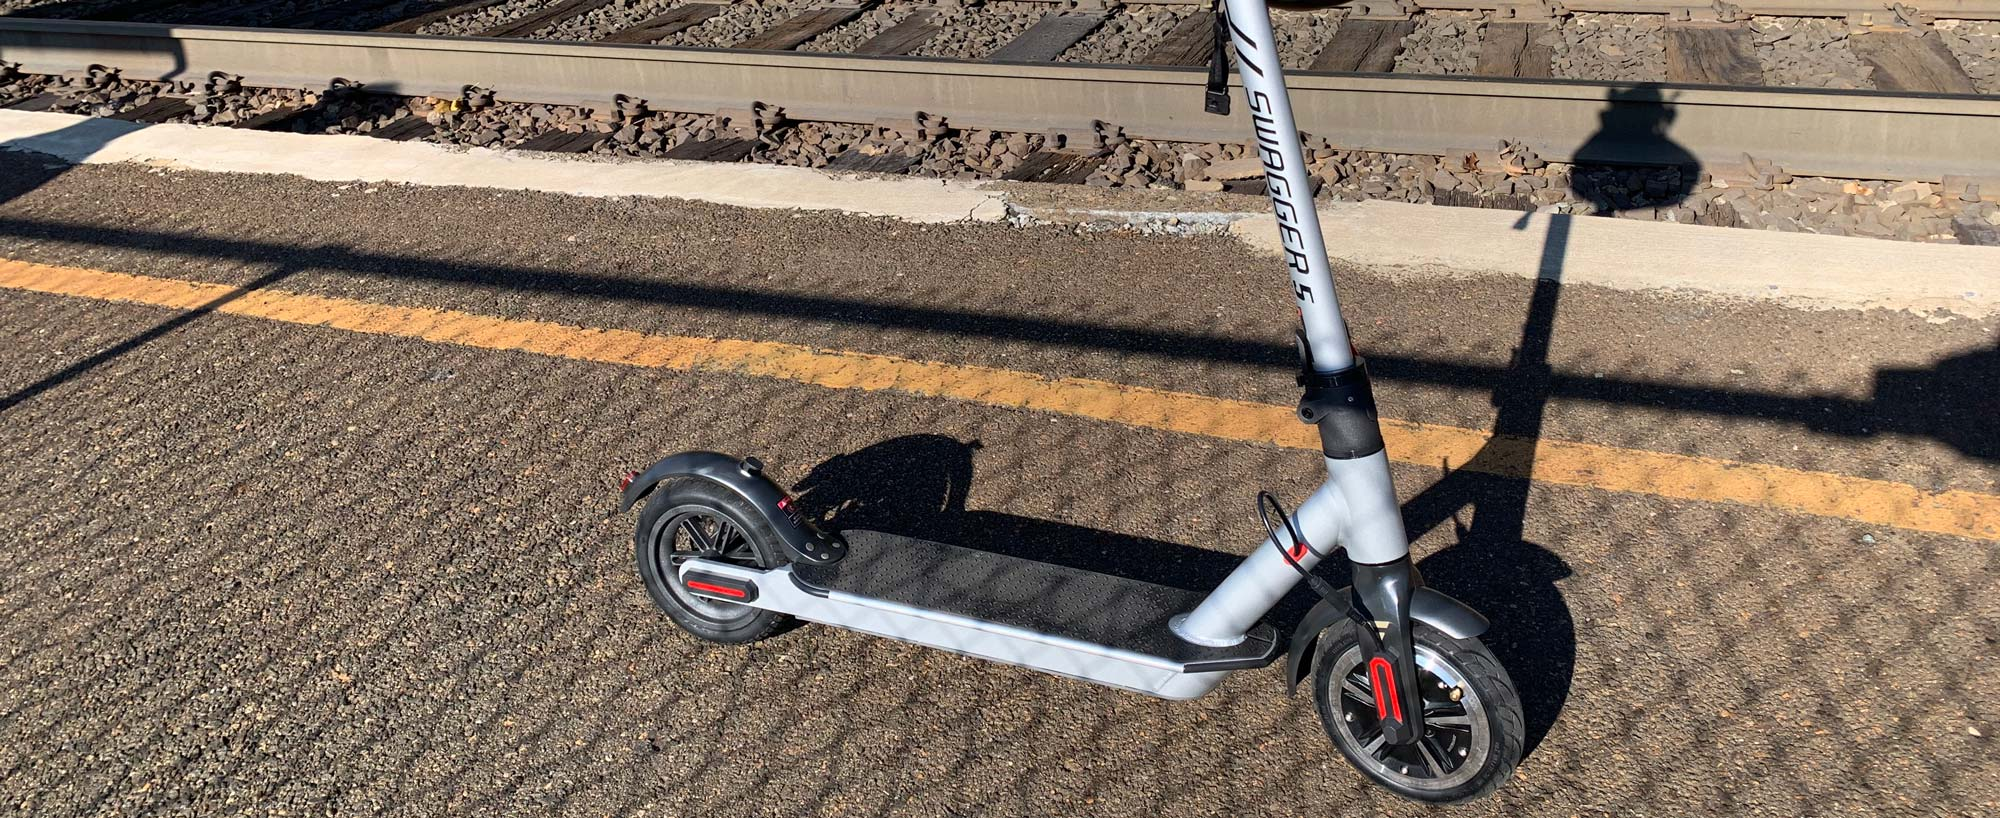 Melhores scooters elétricas: Swagtron Swagger 5